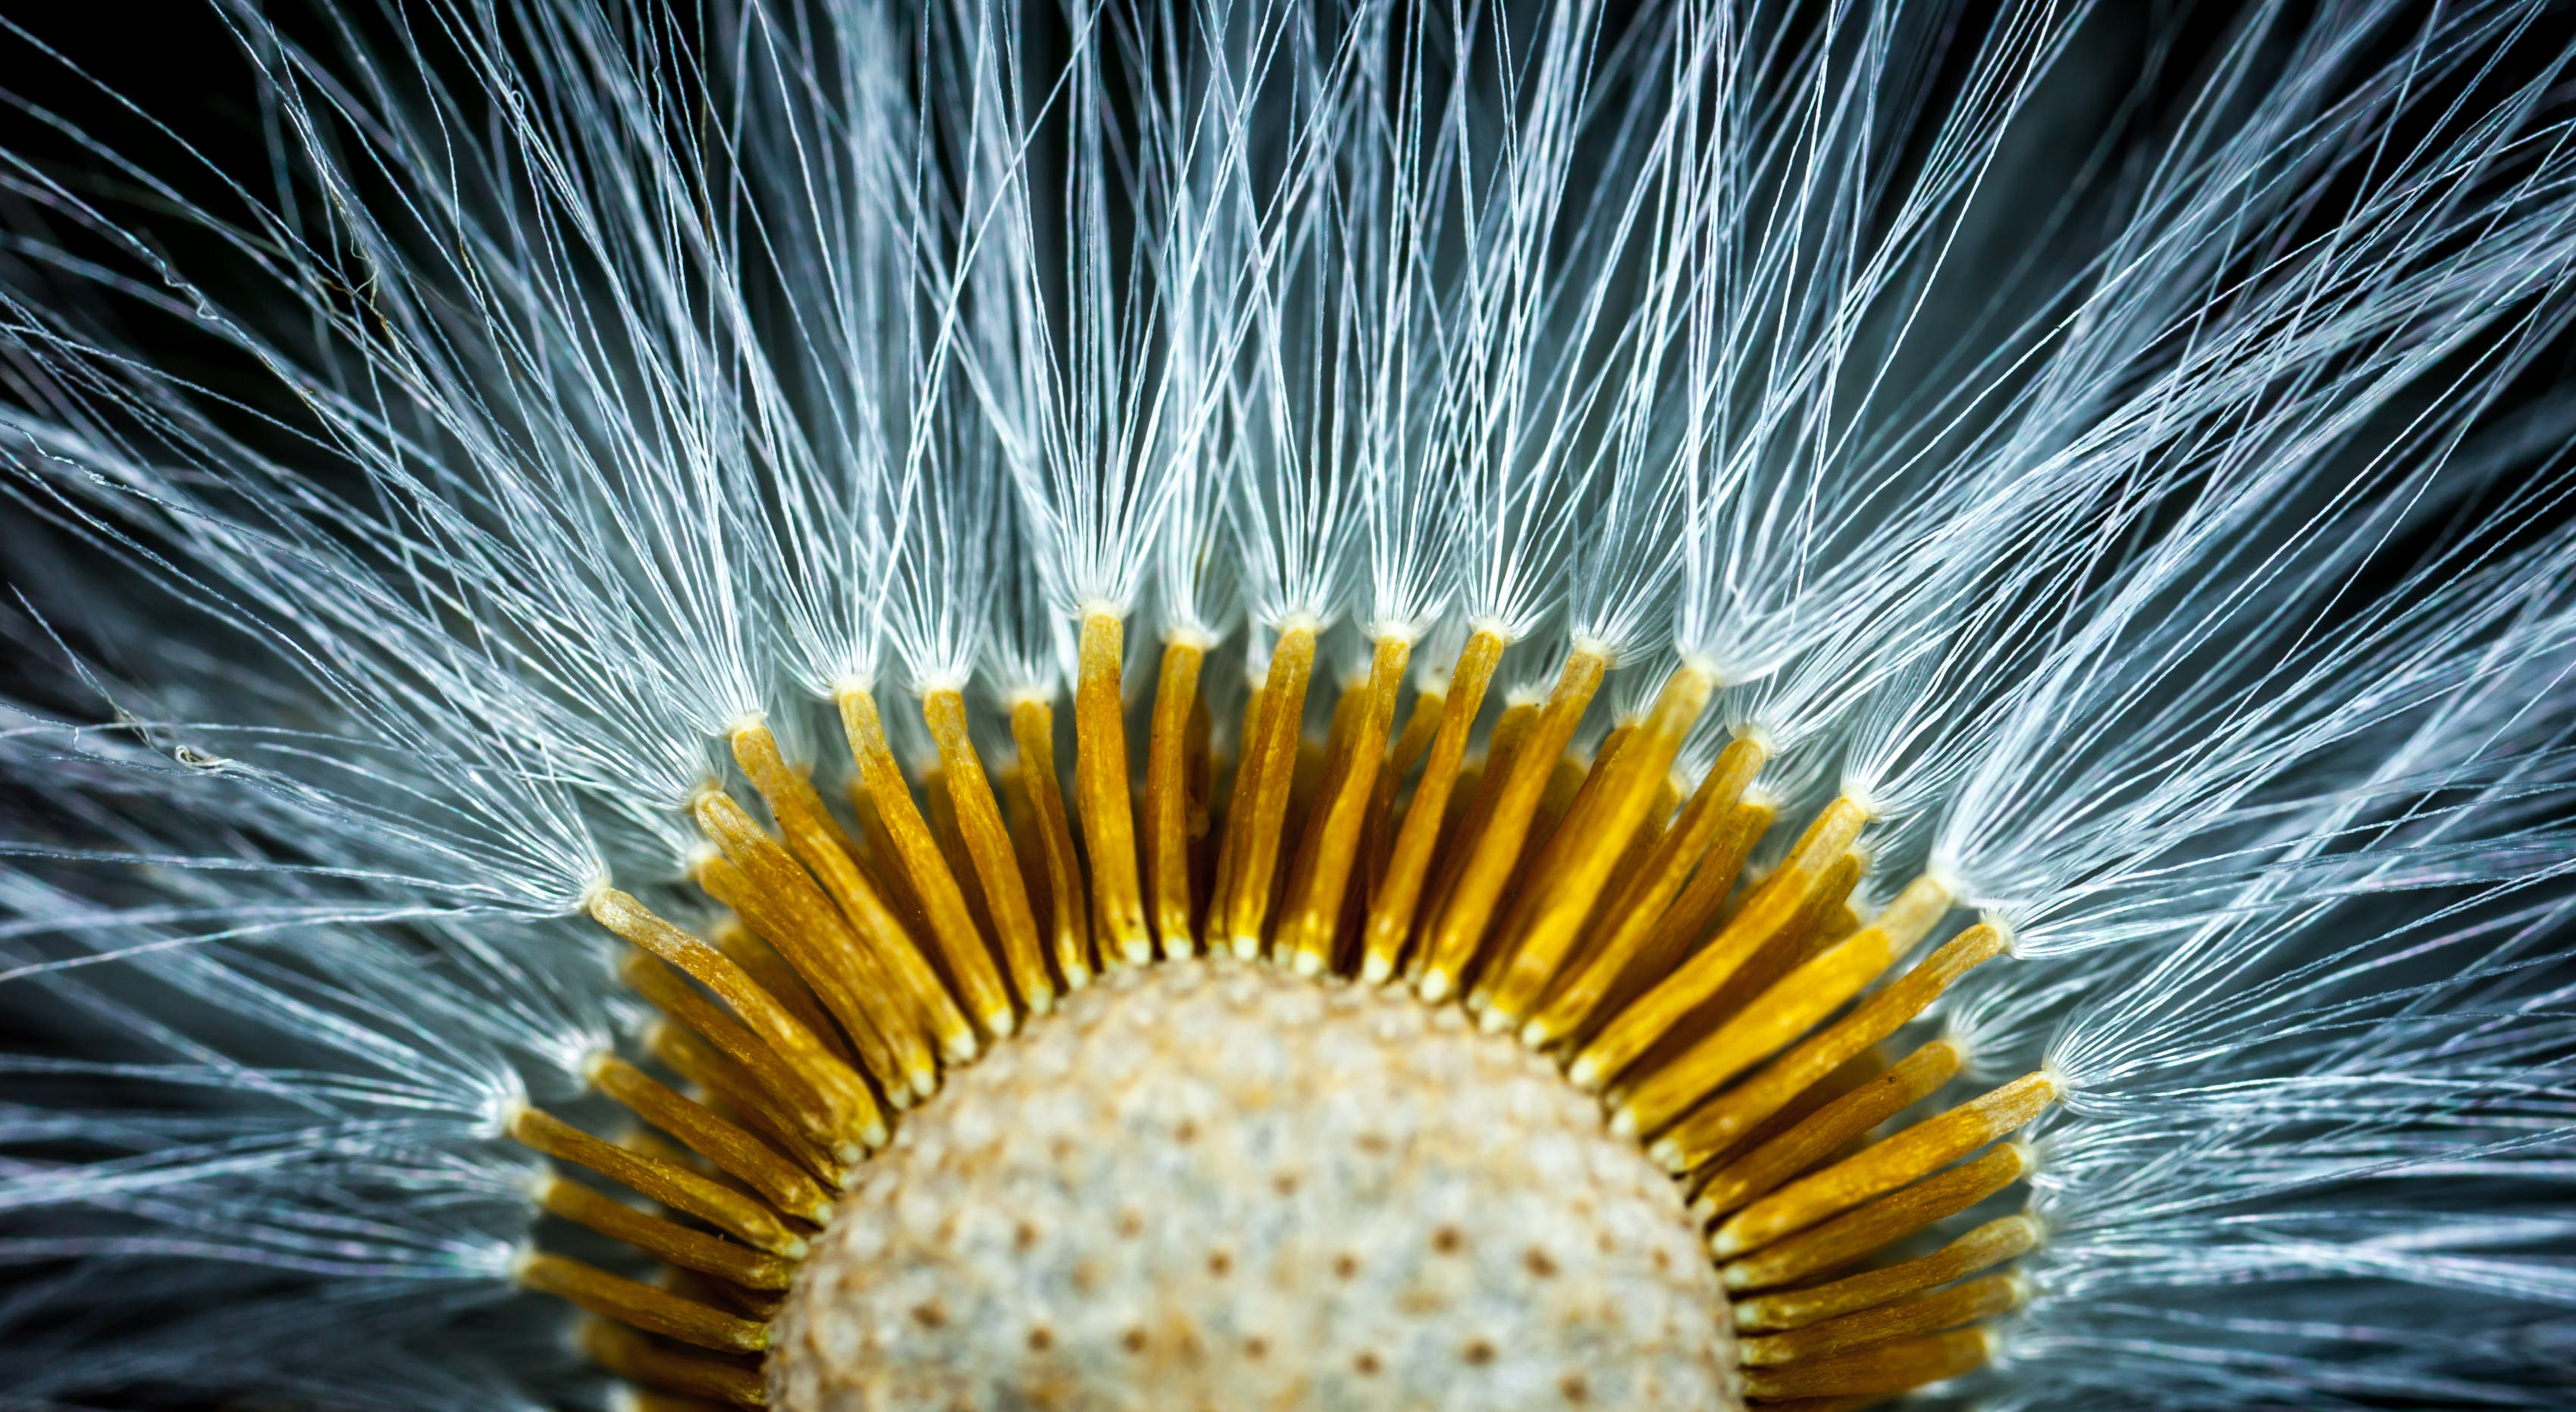 Close-up Photography of Dandelion Flower